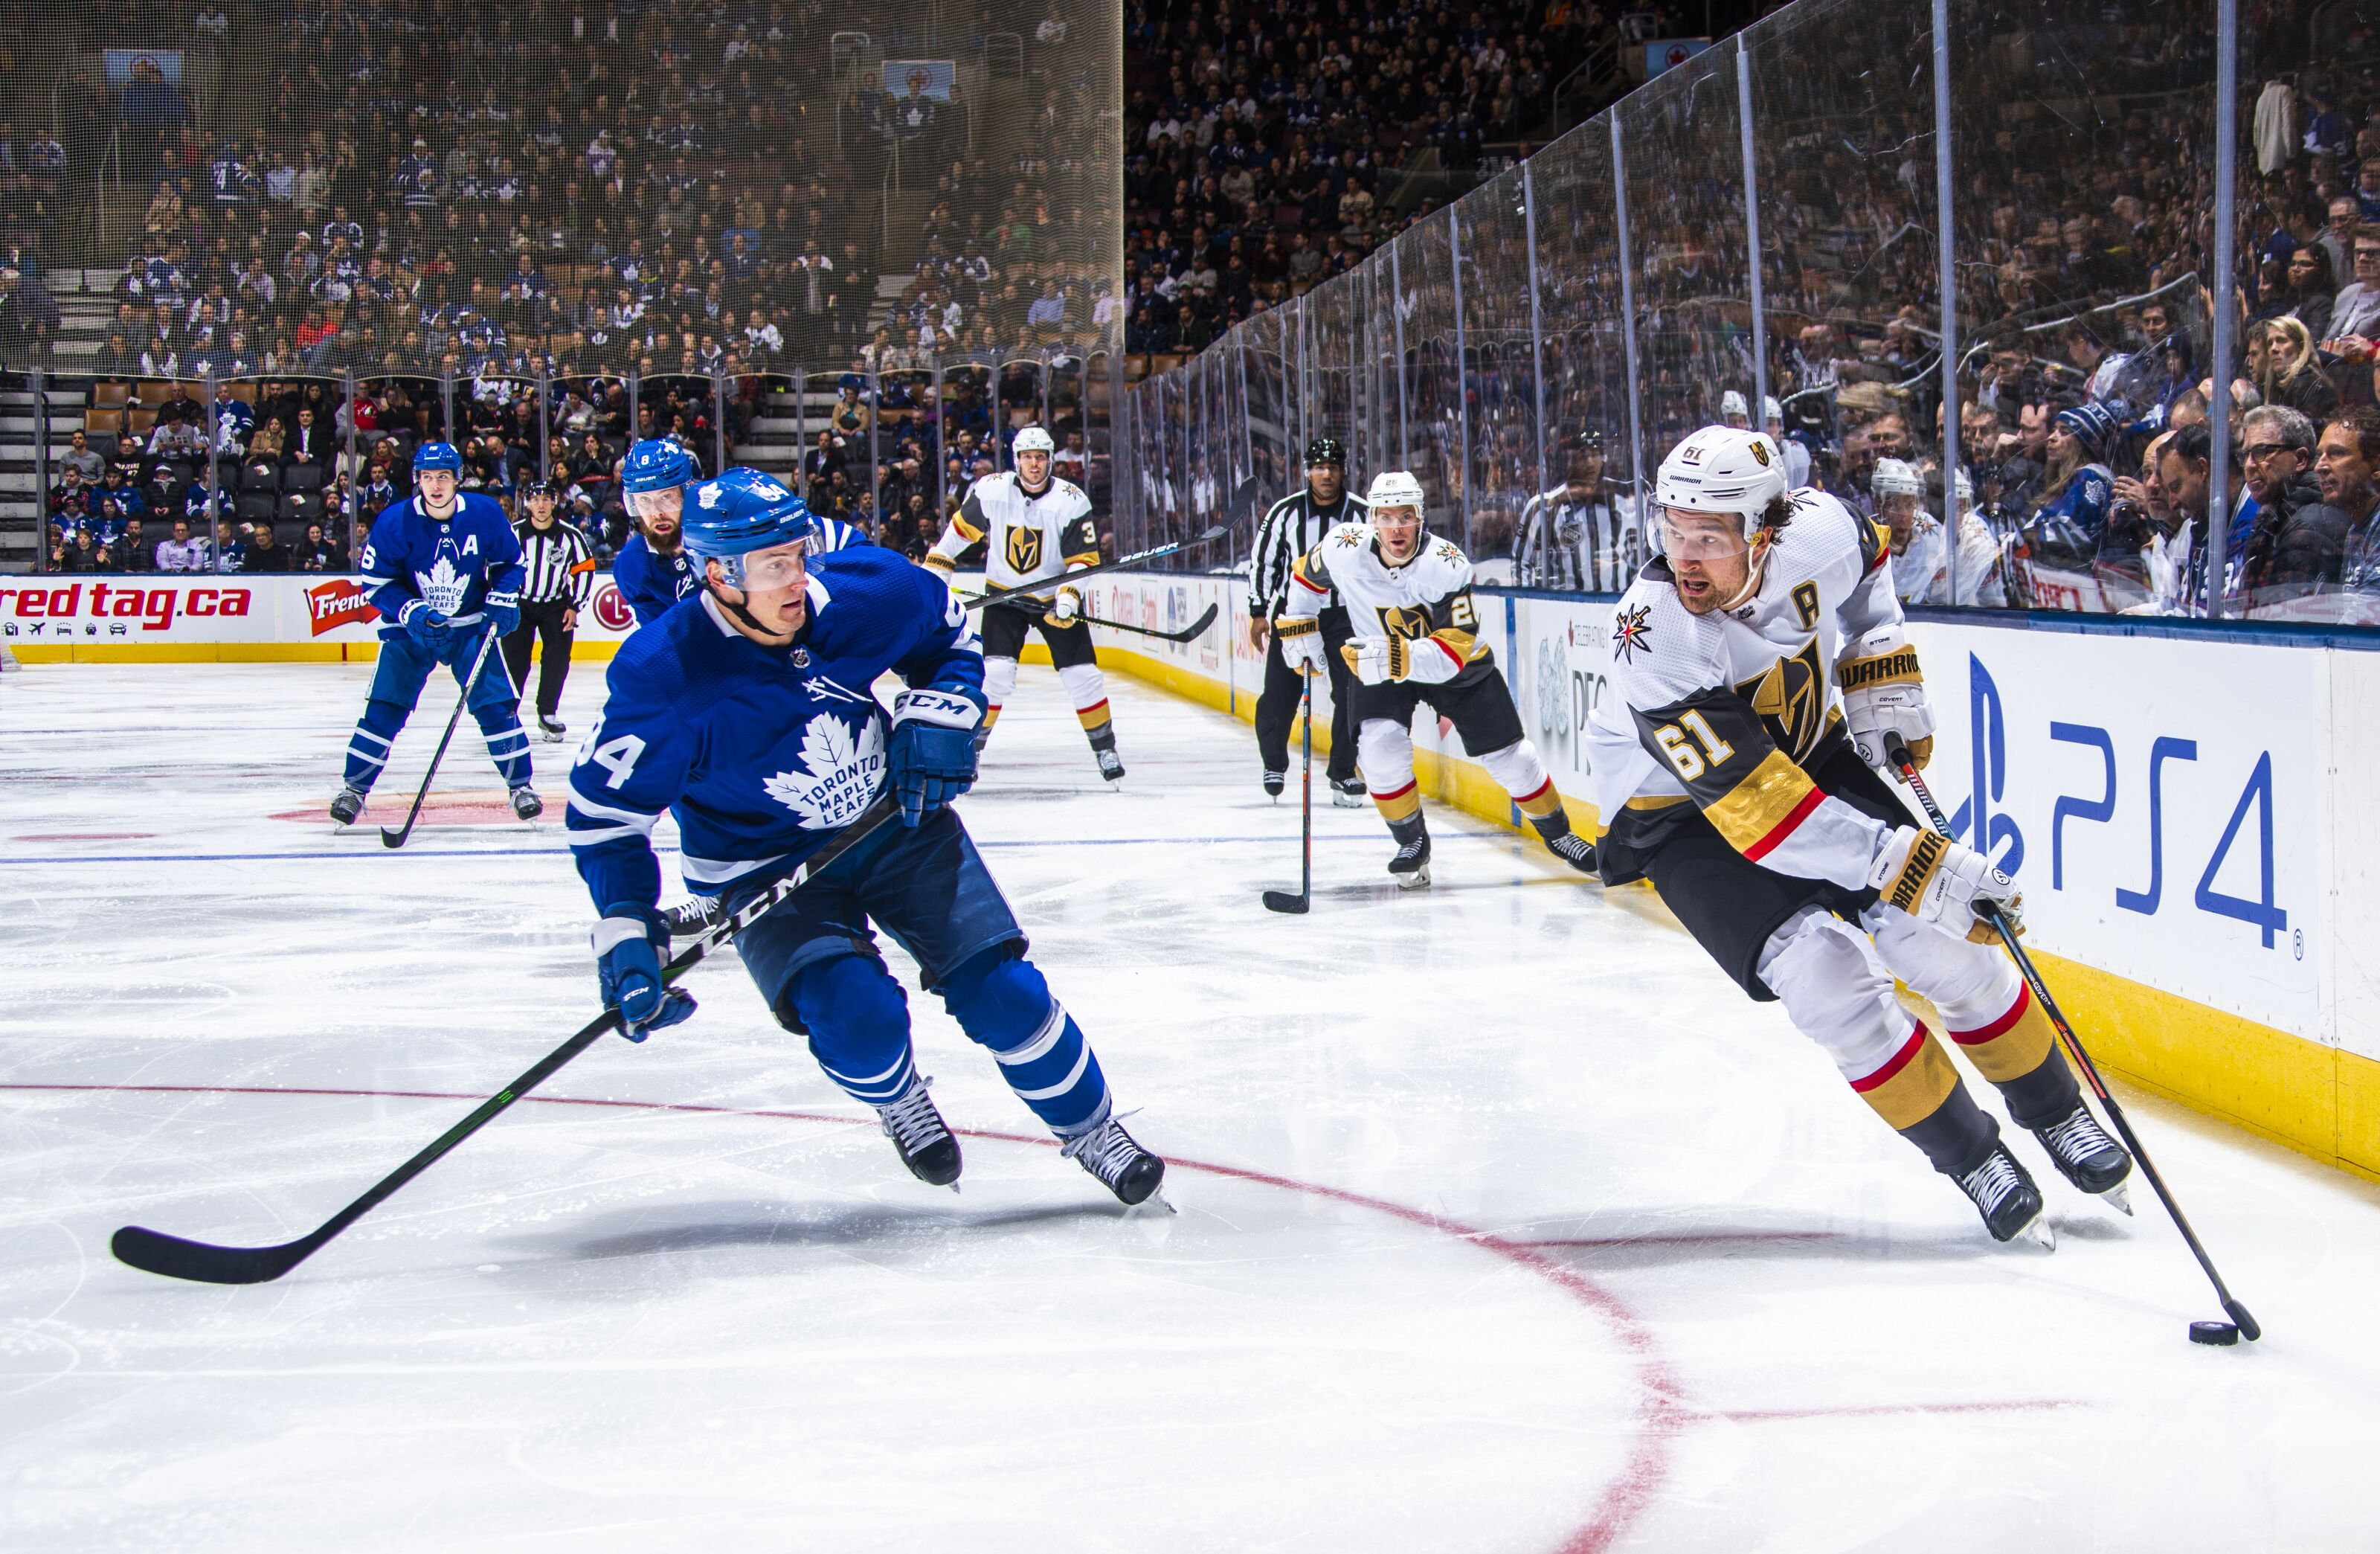 Vegas Golden Knights vs. Toronto Maple Leafs: Date, Time, More